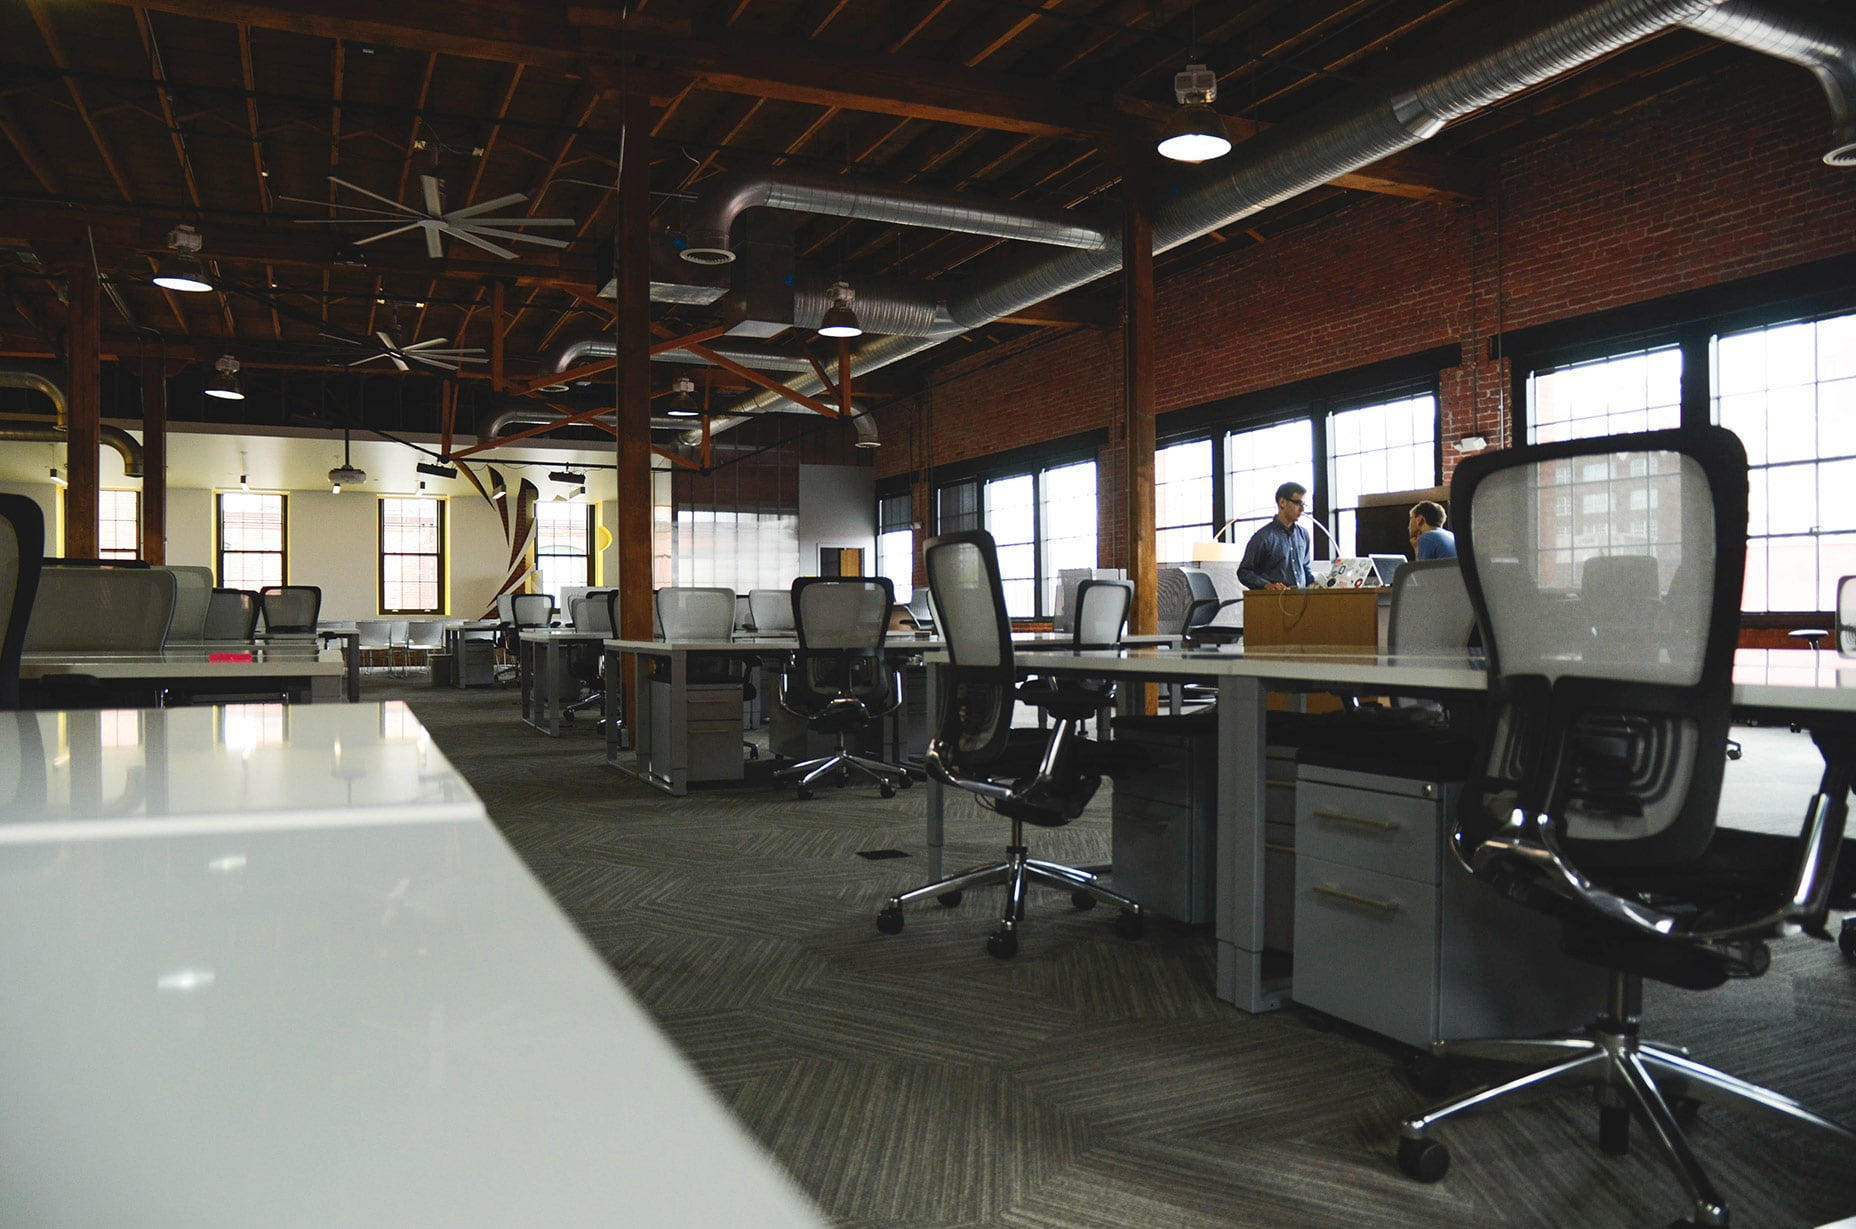 Spend some time at a co-working space